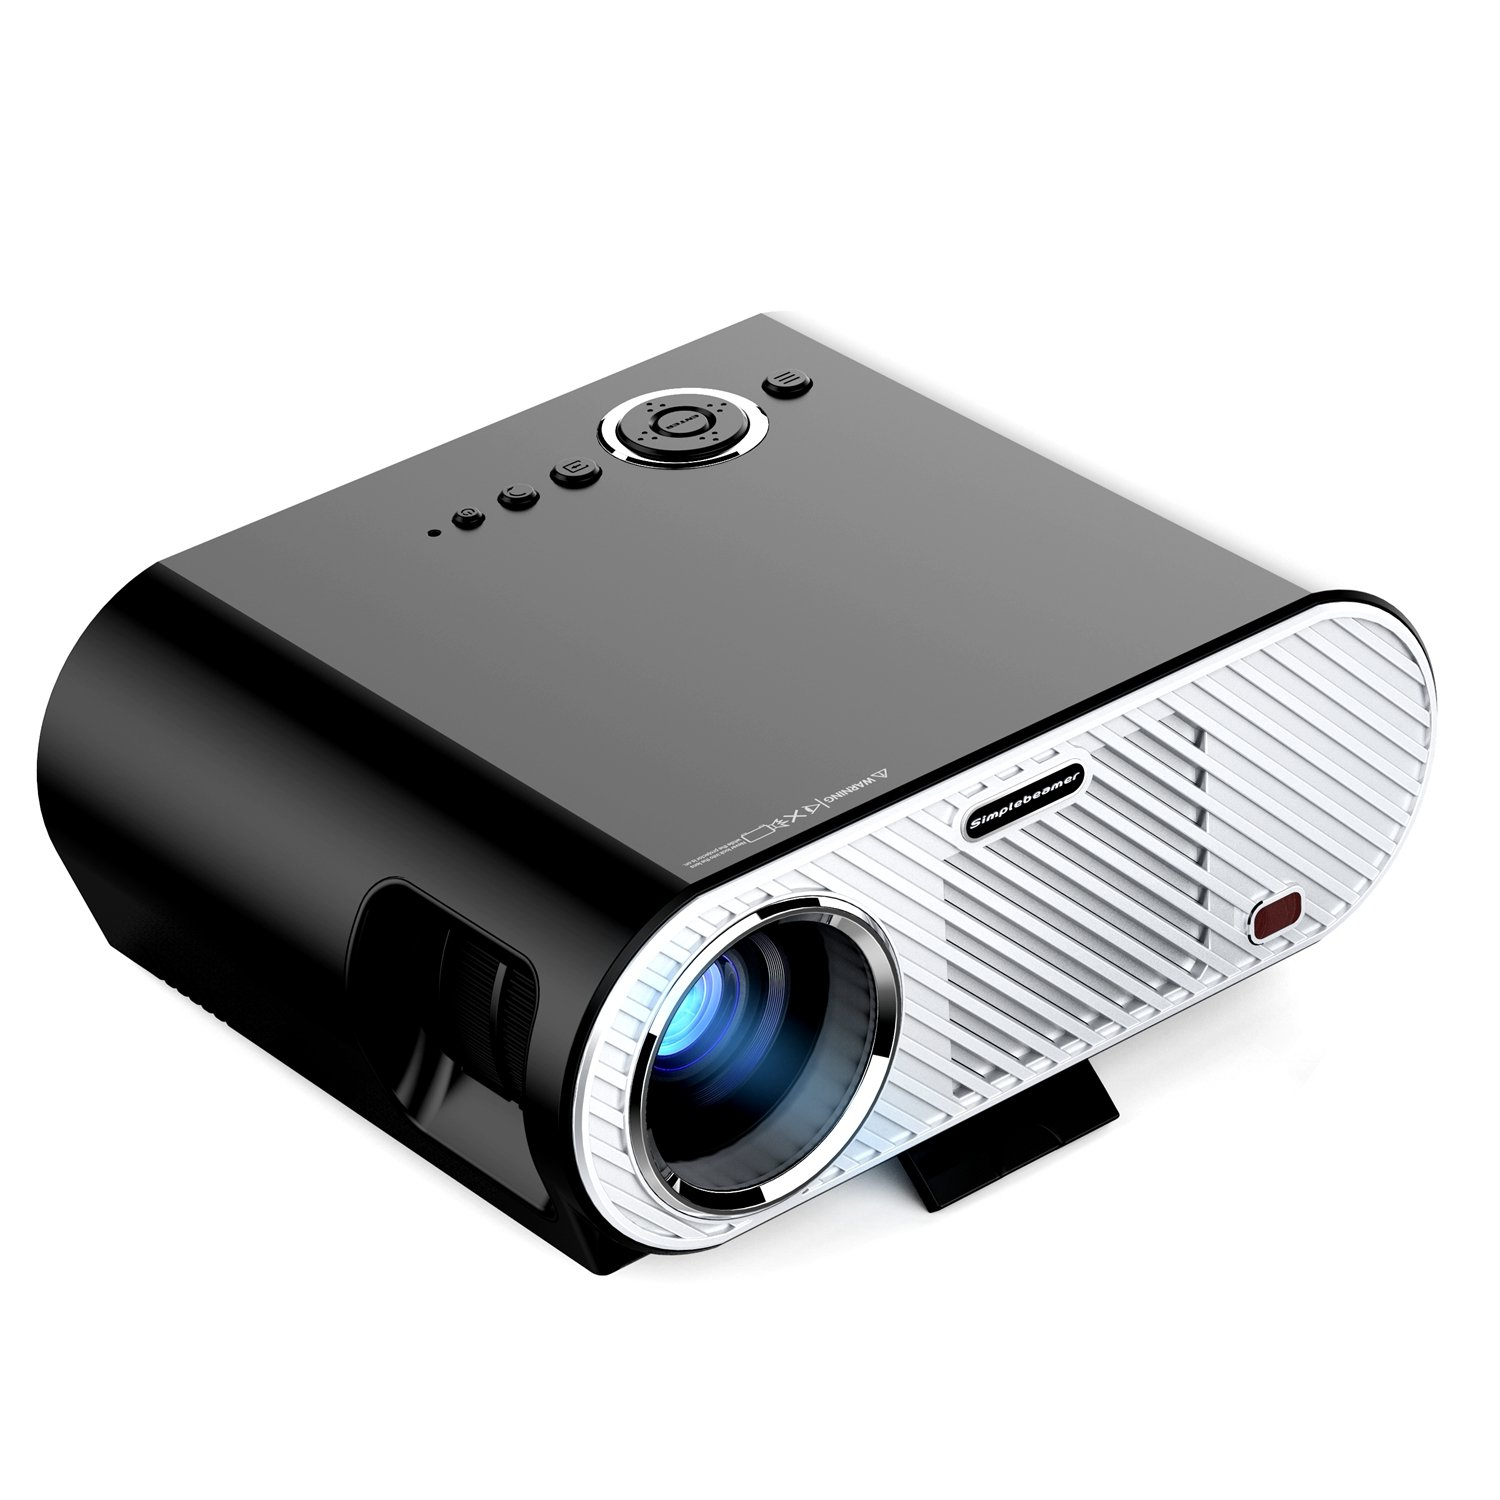 Abdtech LCD Portable Video Home Projector With 3200 LED Luminous Efficiency Max 280'' Screen With Optical Keystone USB/AV/HDMI/VGA Interface-Support 1080P HD-Ideal for Video Games And Movie